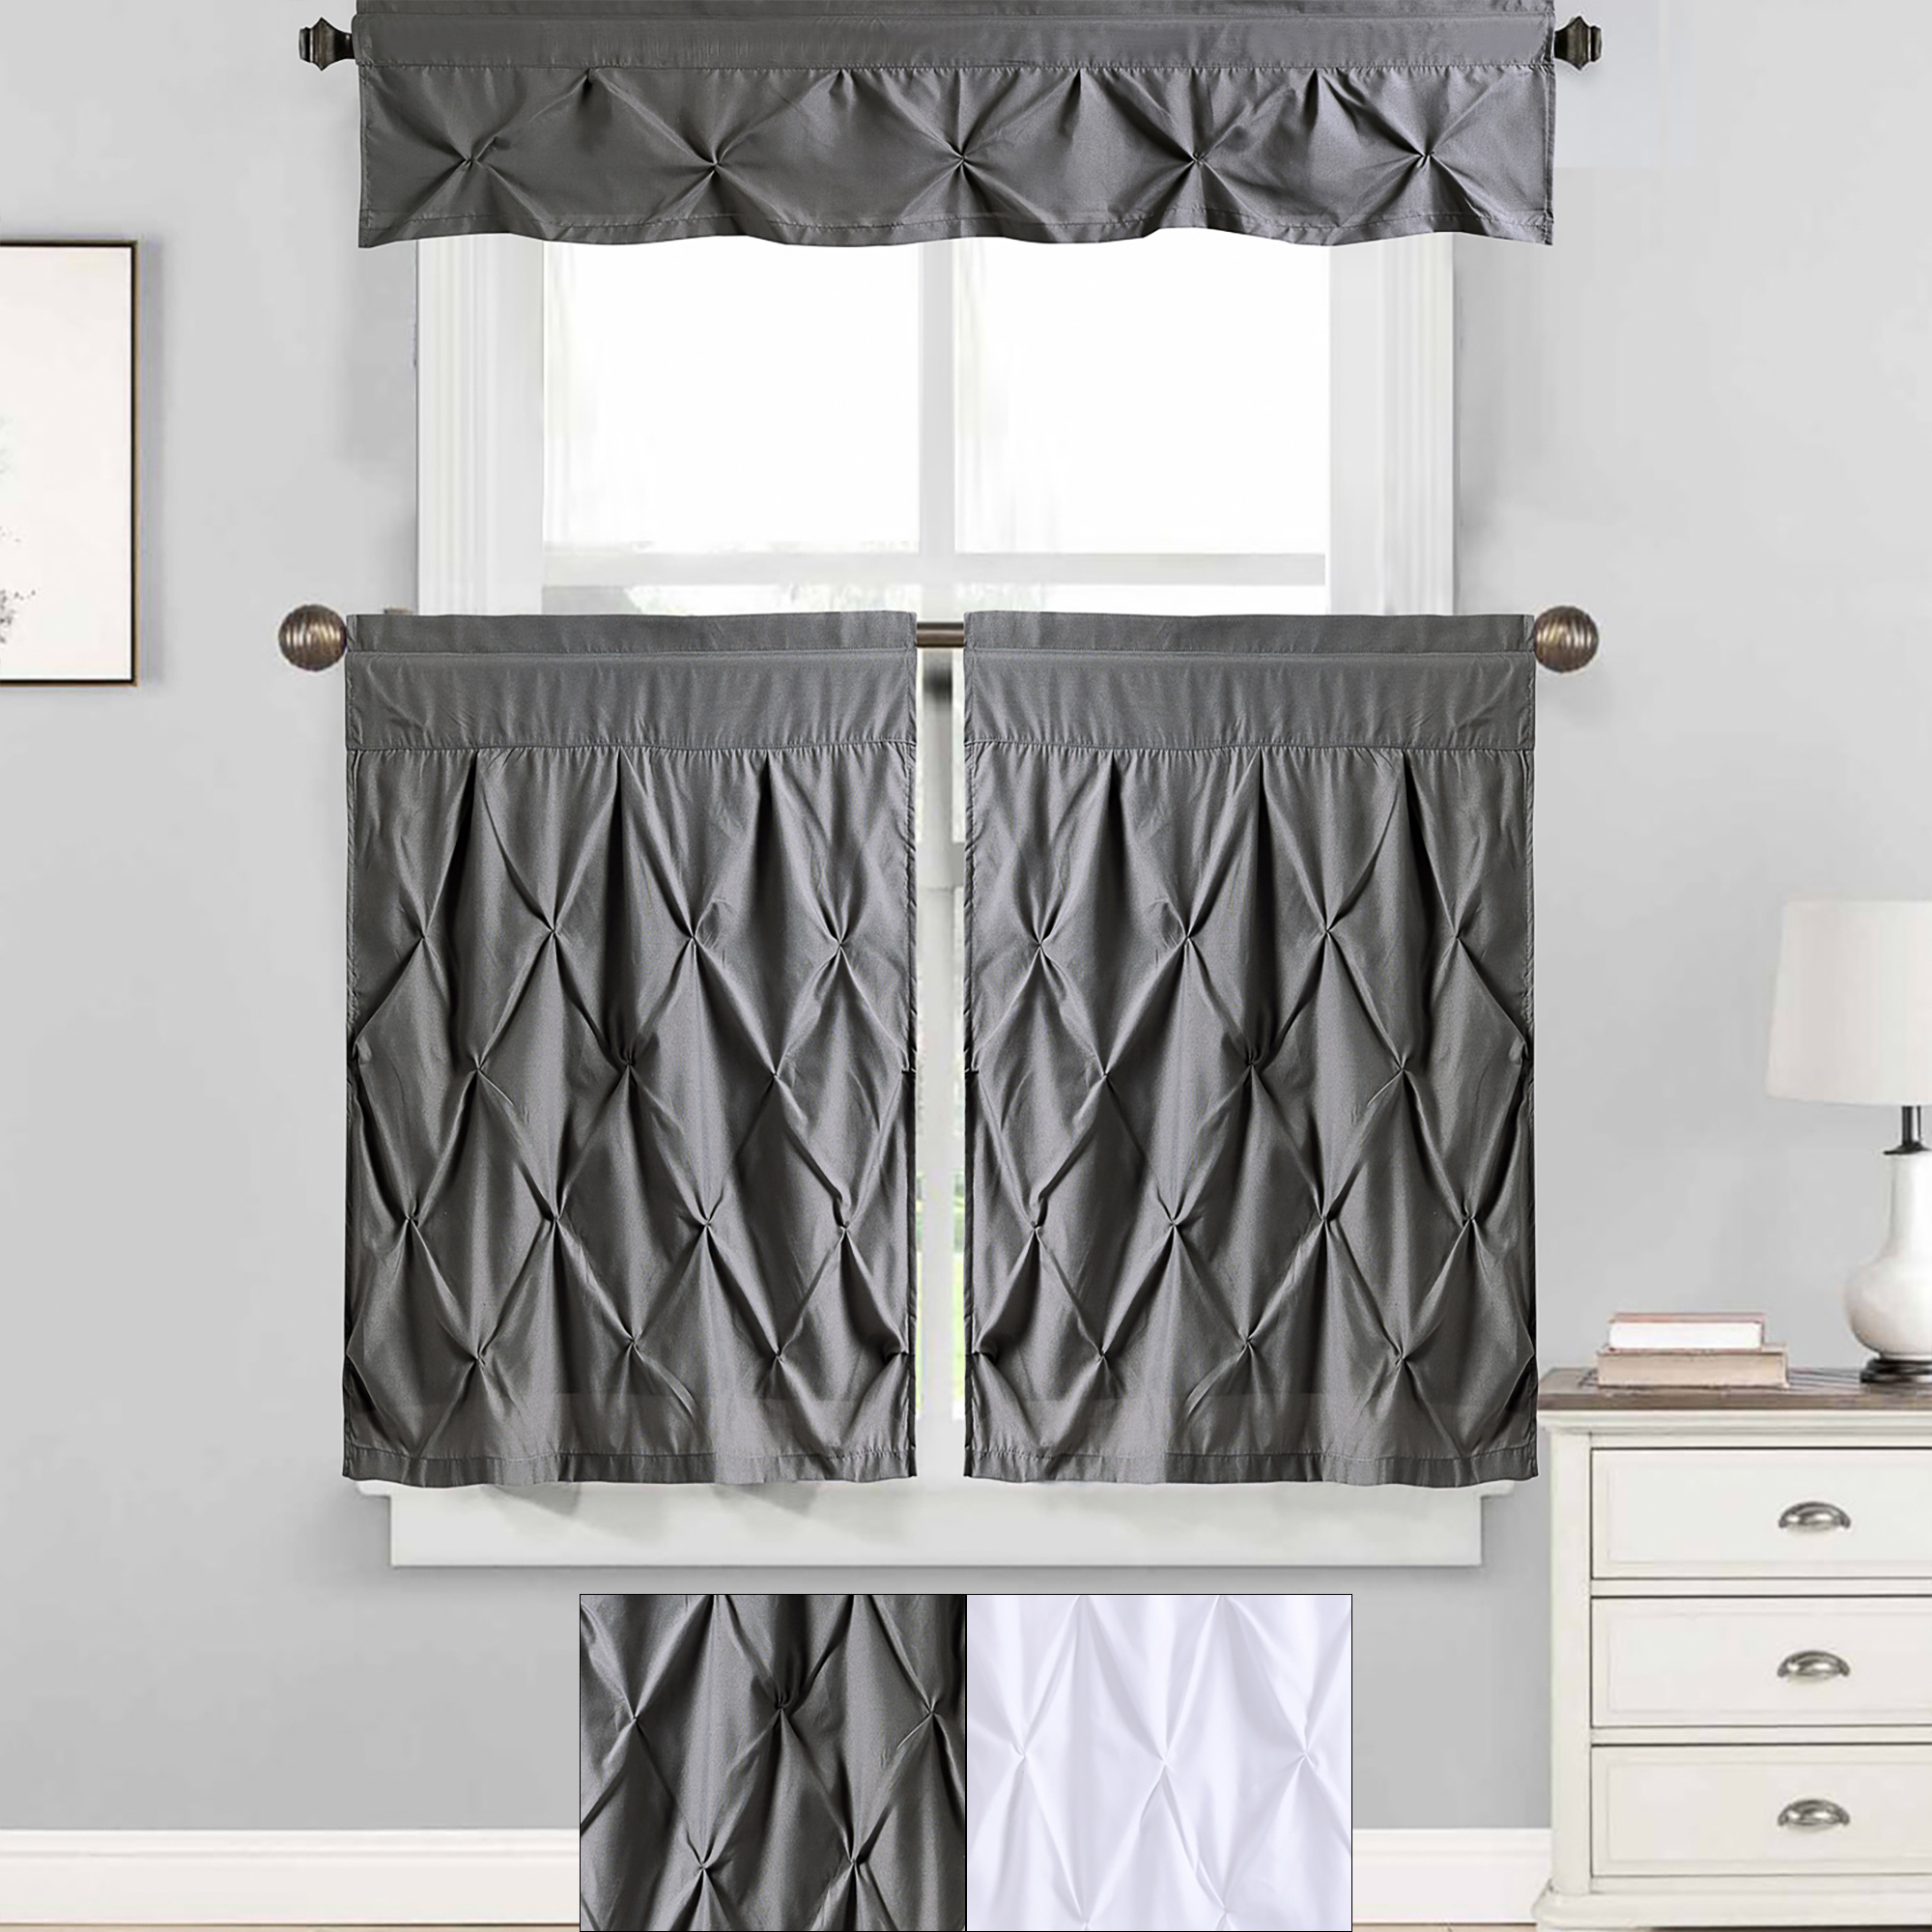 "Hudson Pintuck Window Curtain Valances Pertaining To Latest Details Zu Hudson Pintuck Kitchen Window Curtain 36"" Tier Pair And Valance Set (View 2 of 20)"